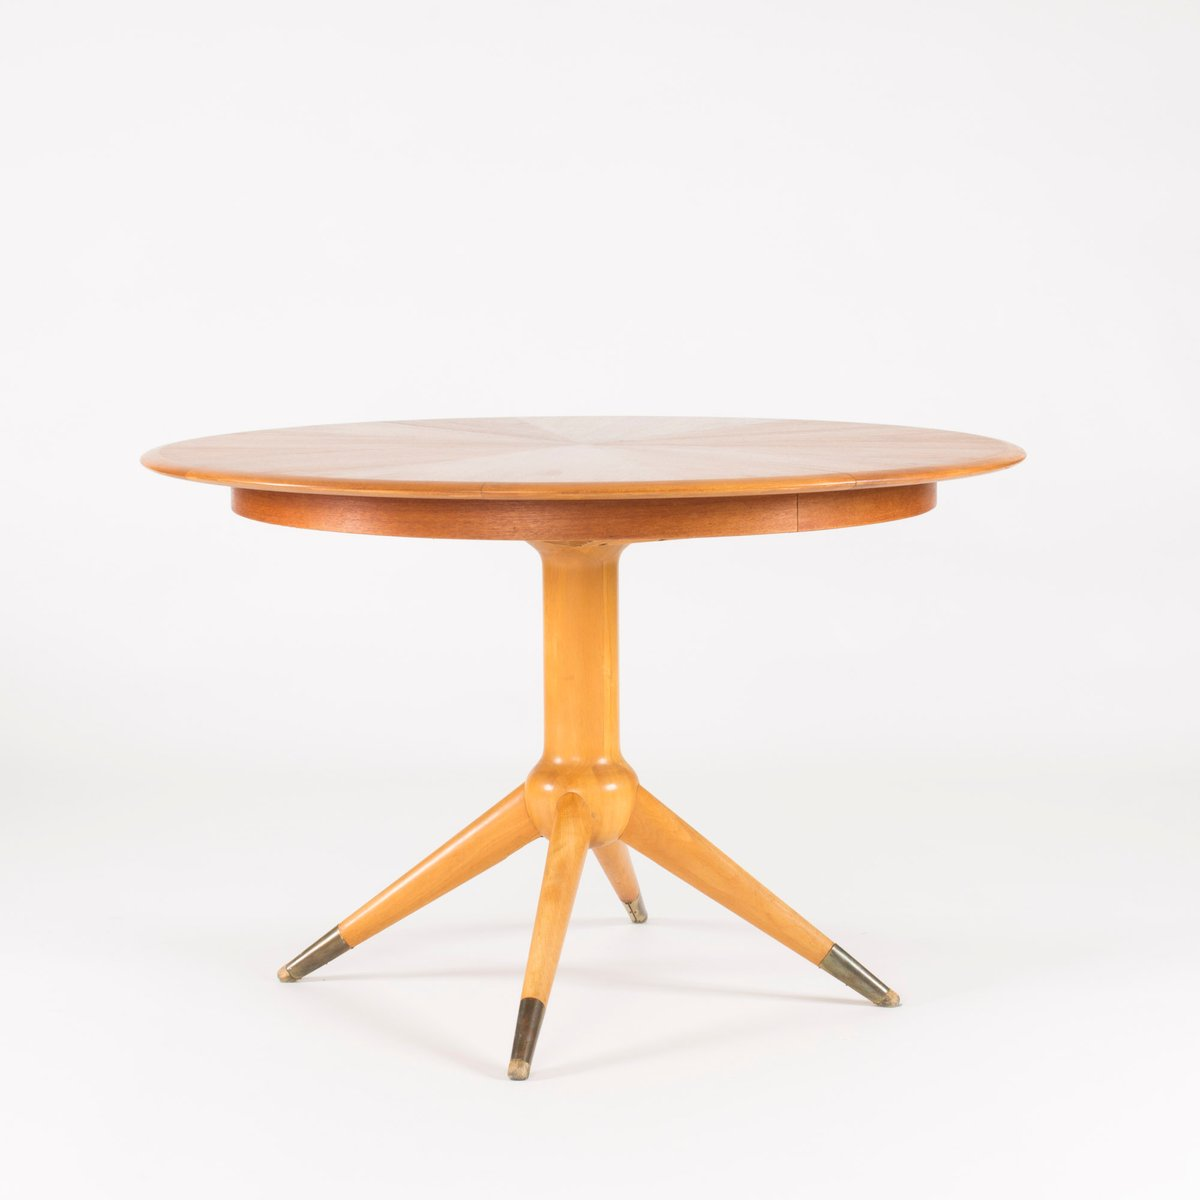 round teak veneer dining table by david ros n for nordiska kompaniet 1950s for sale at pamono. Black Bedroom Furniture Sets. Home Design Ideas